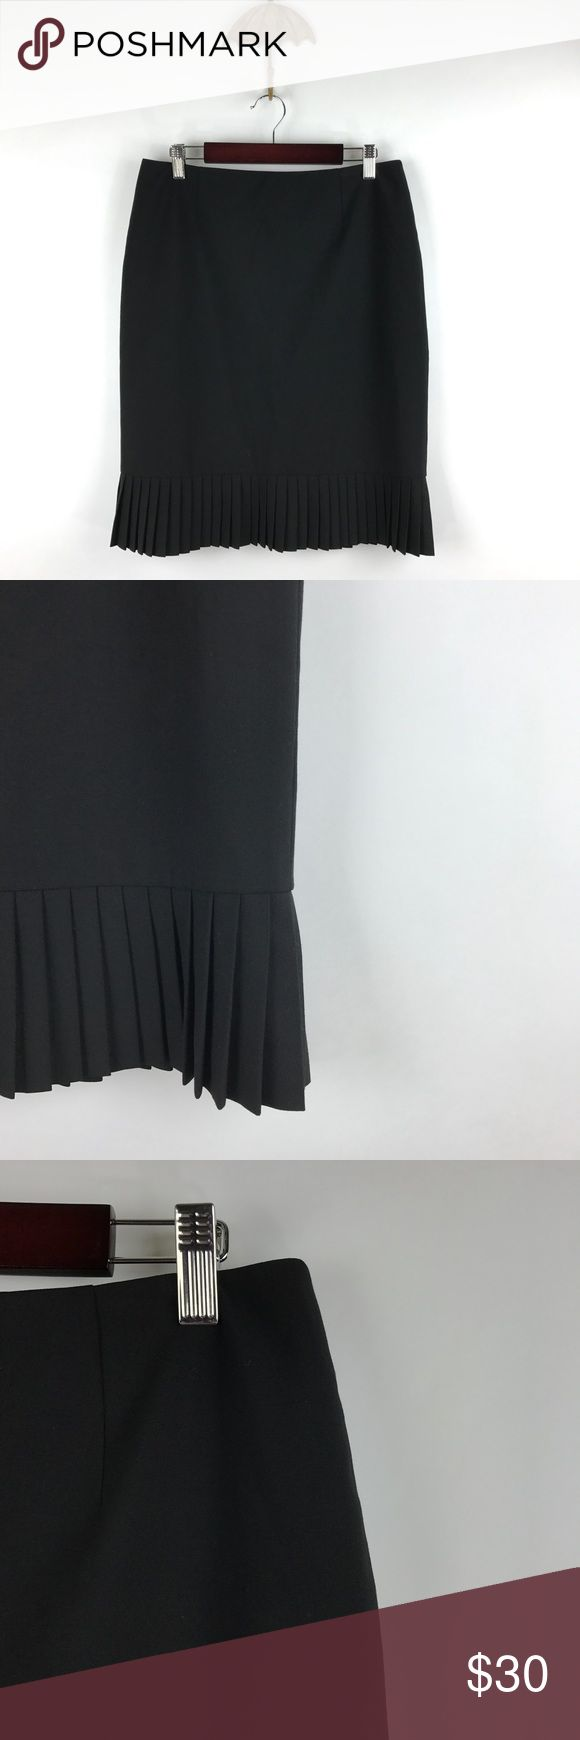 """Alfani Essentials black pencil skirt Sz 4P 688 Alfani Essentials Sz 4P Women's Petite Black Career Pencil Skirt Pleated Hem 688  Measurements: Waist:  15"""" Flat Across Length: 21.5"""" Long  In good preowned condition with no known flaws and light overall wear. Alfani Skirts Pencil"""